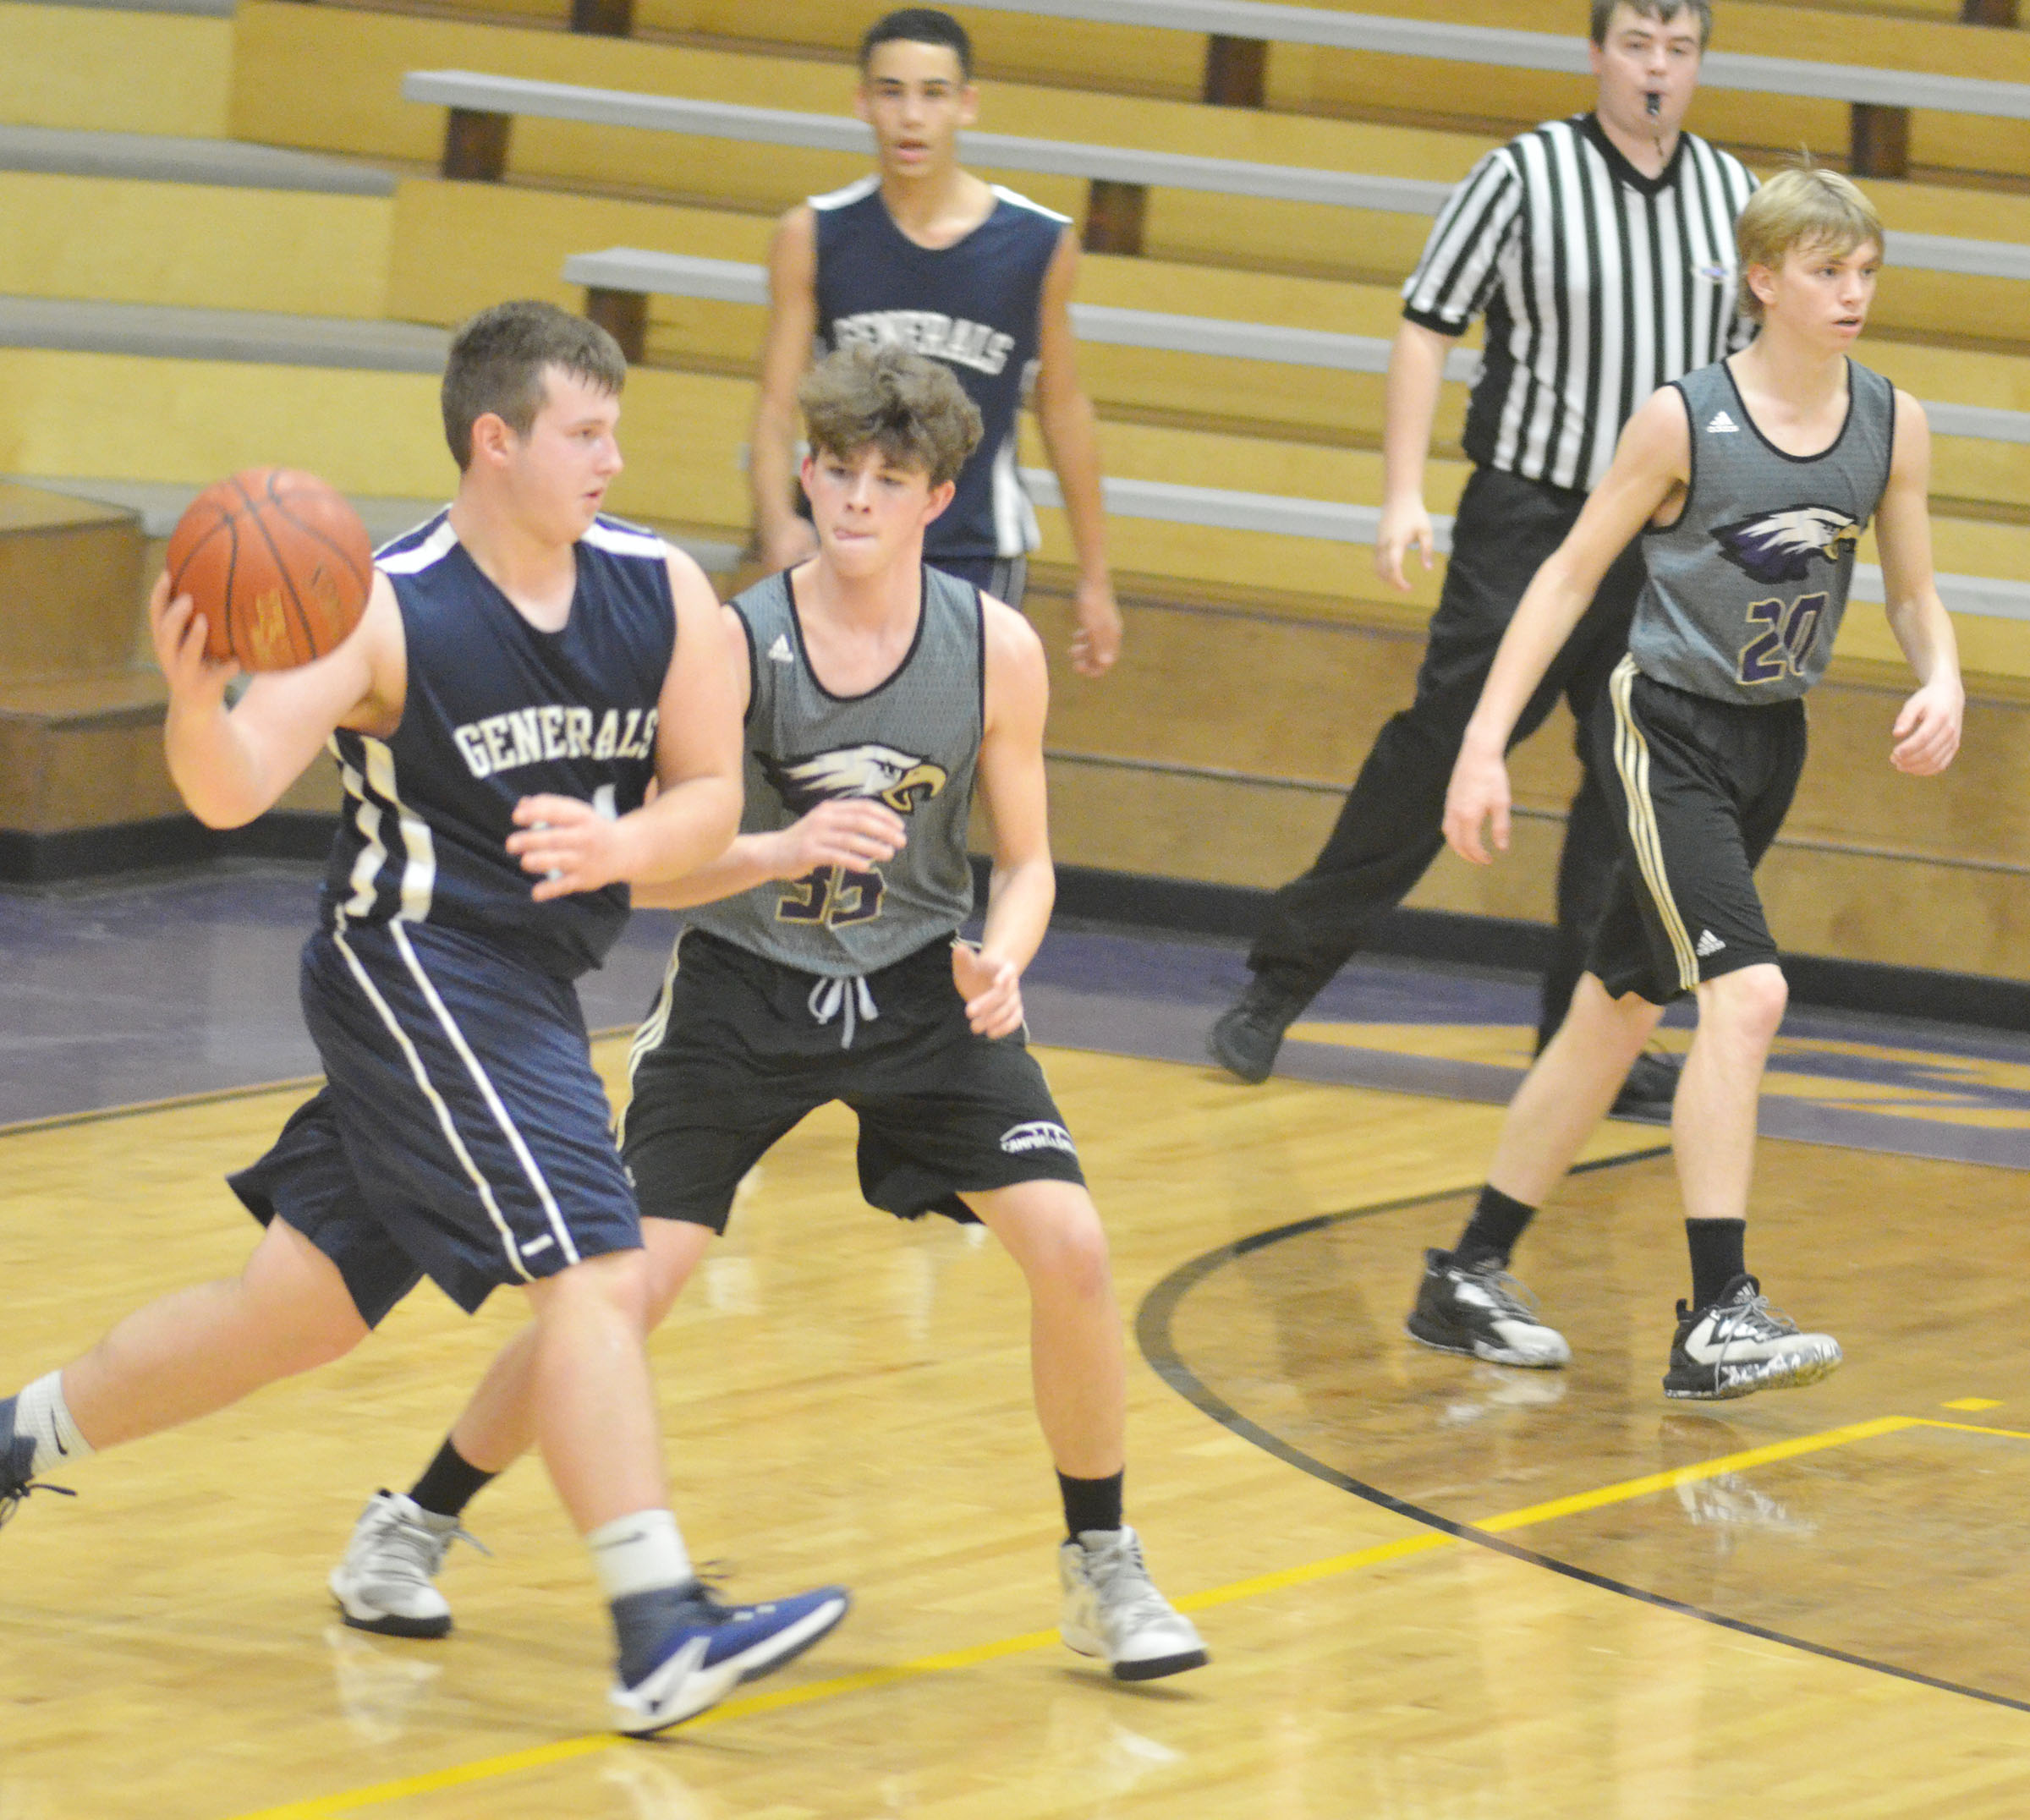 CHS freshman Mark Rigsby plays defense.